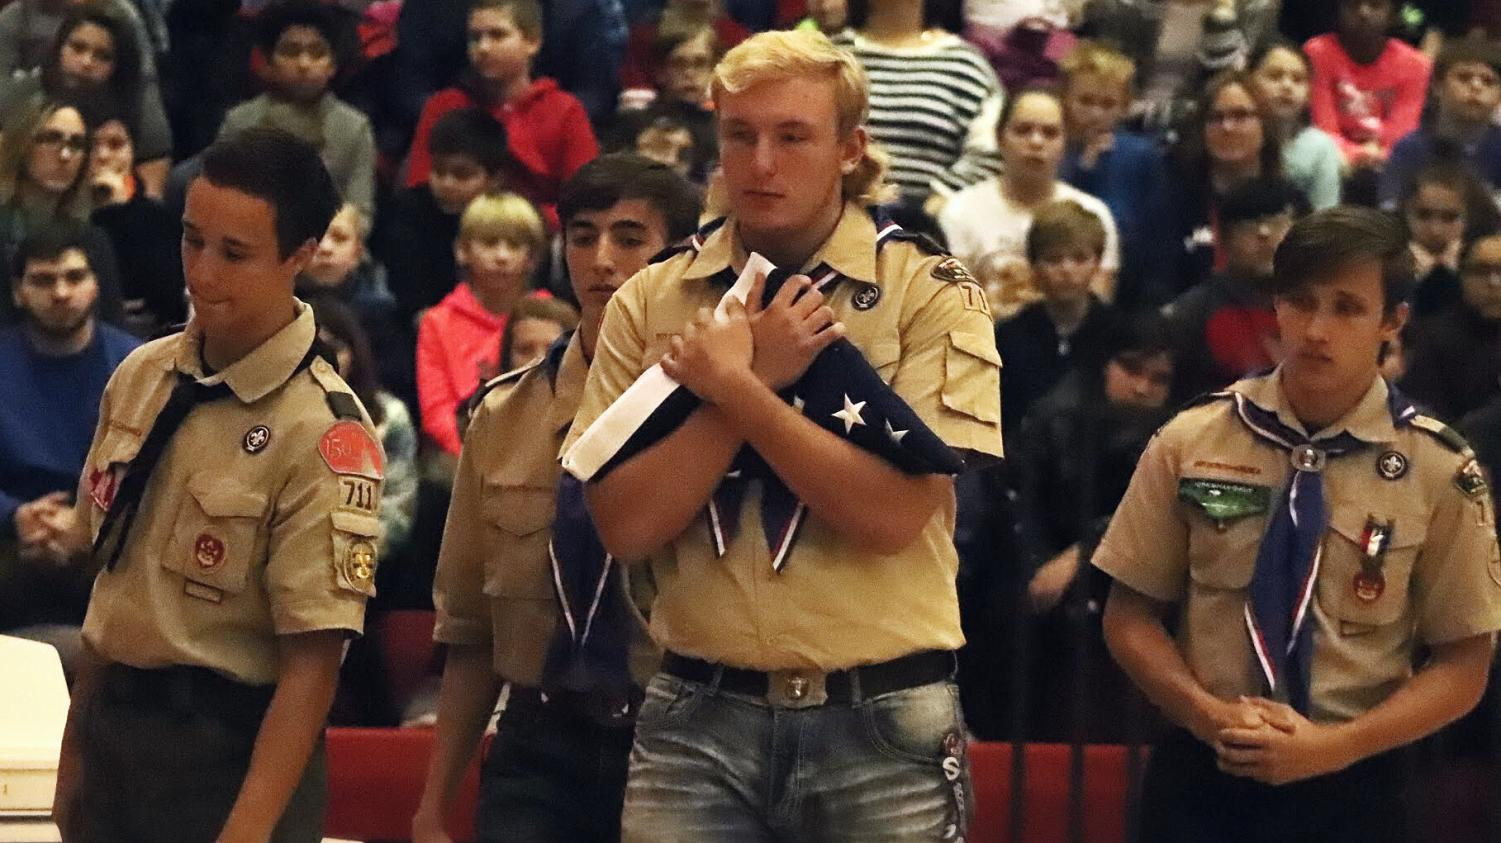 Eagle Scout candidates Mitchell Rudie, Jack Parr, Jake Nelson, and Tyler Kraus exit the stage after folding the American flag.